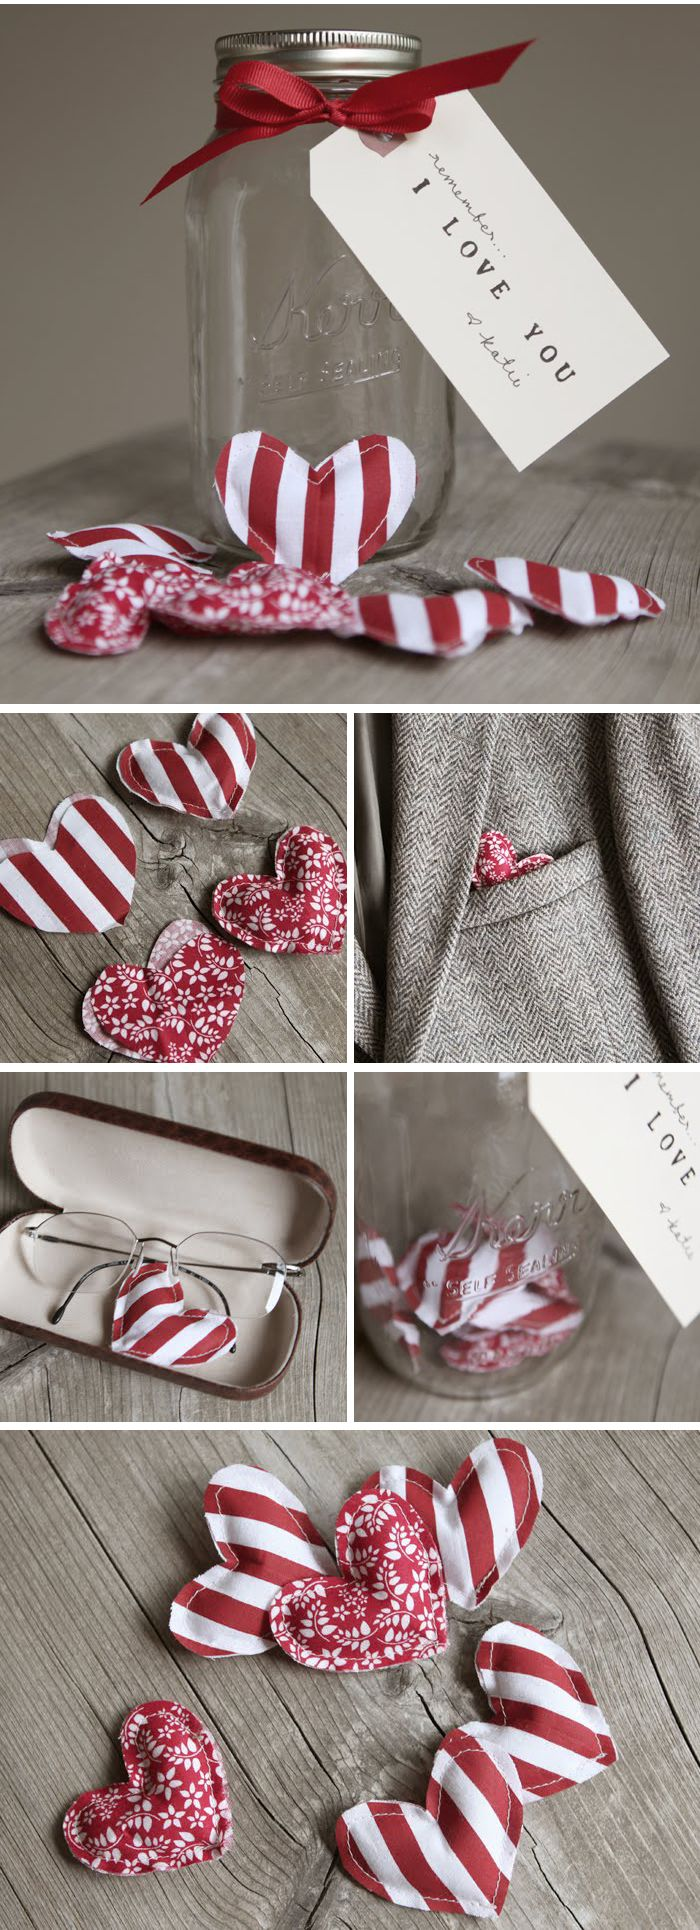 Hide along hearts to show extra love! #heart #valentines